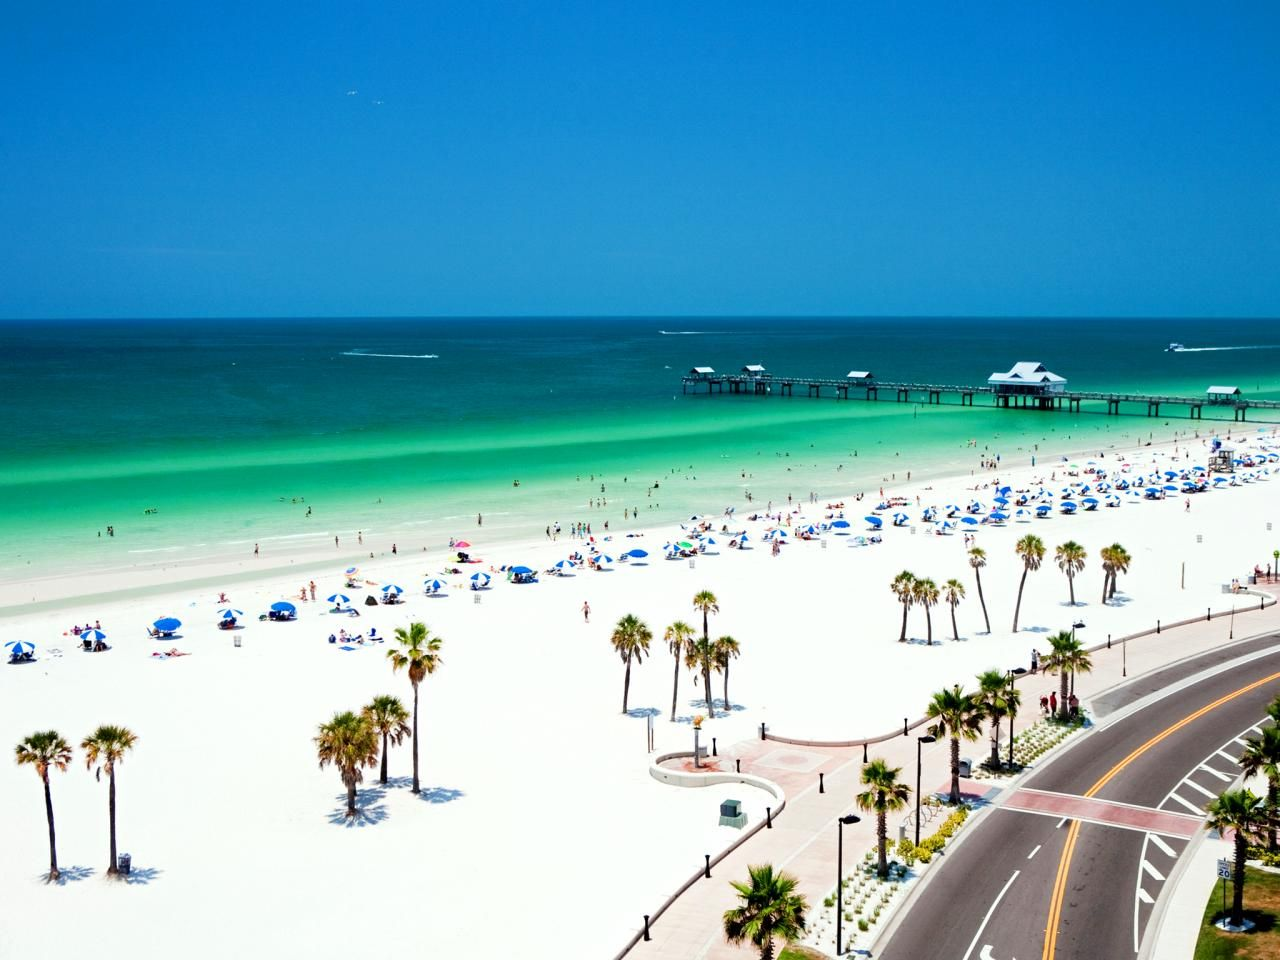 Clearwater Beach Has Lured Countless Families And S To Its Broad Sandy Ss Beachfront Hotels Spread Along A Narrow 3 Mile Stretch Of The